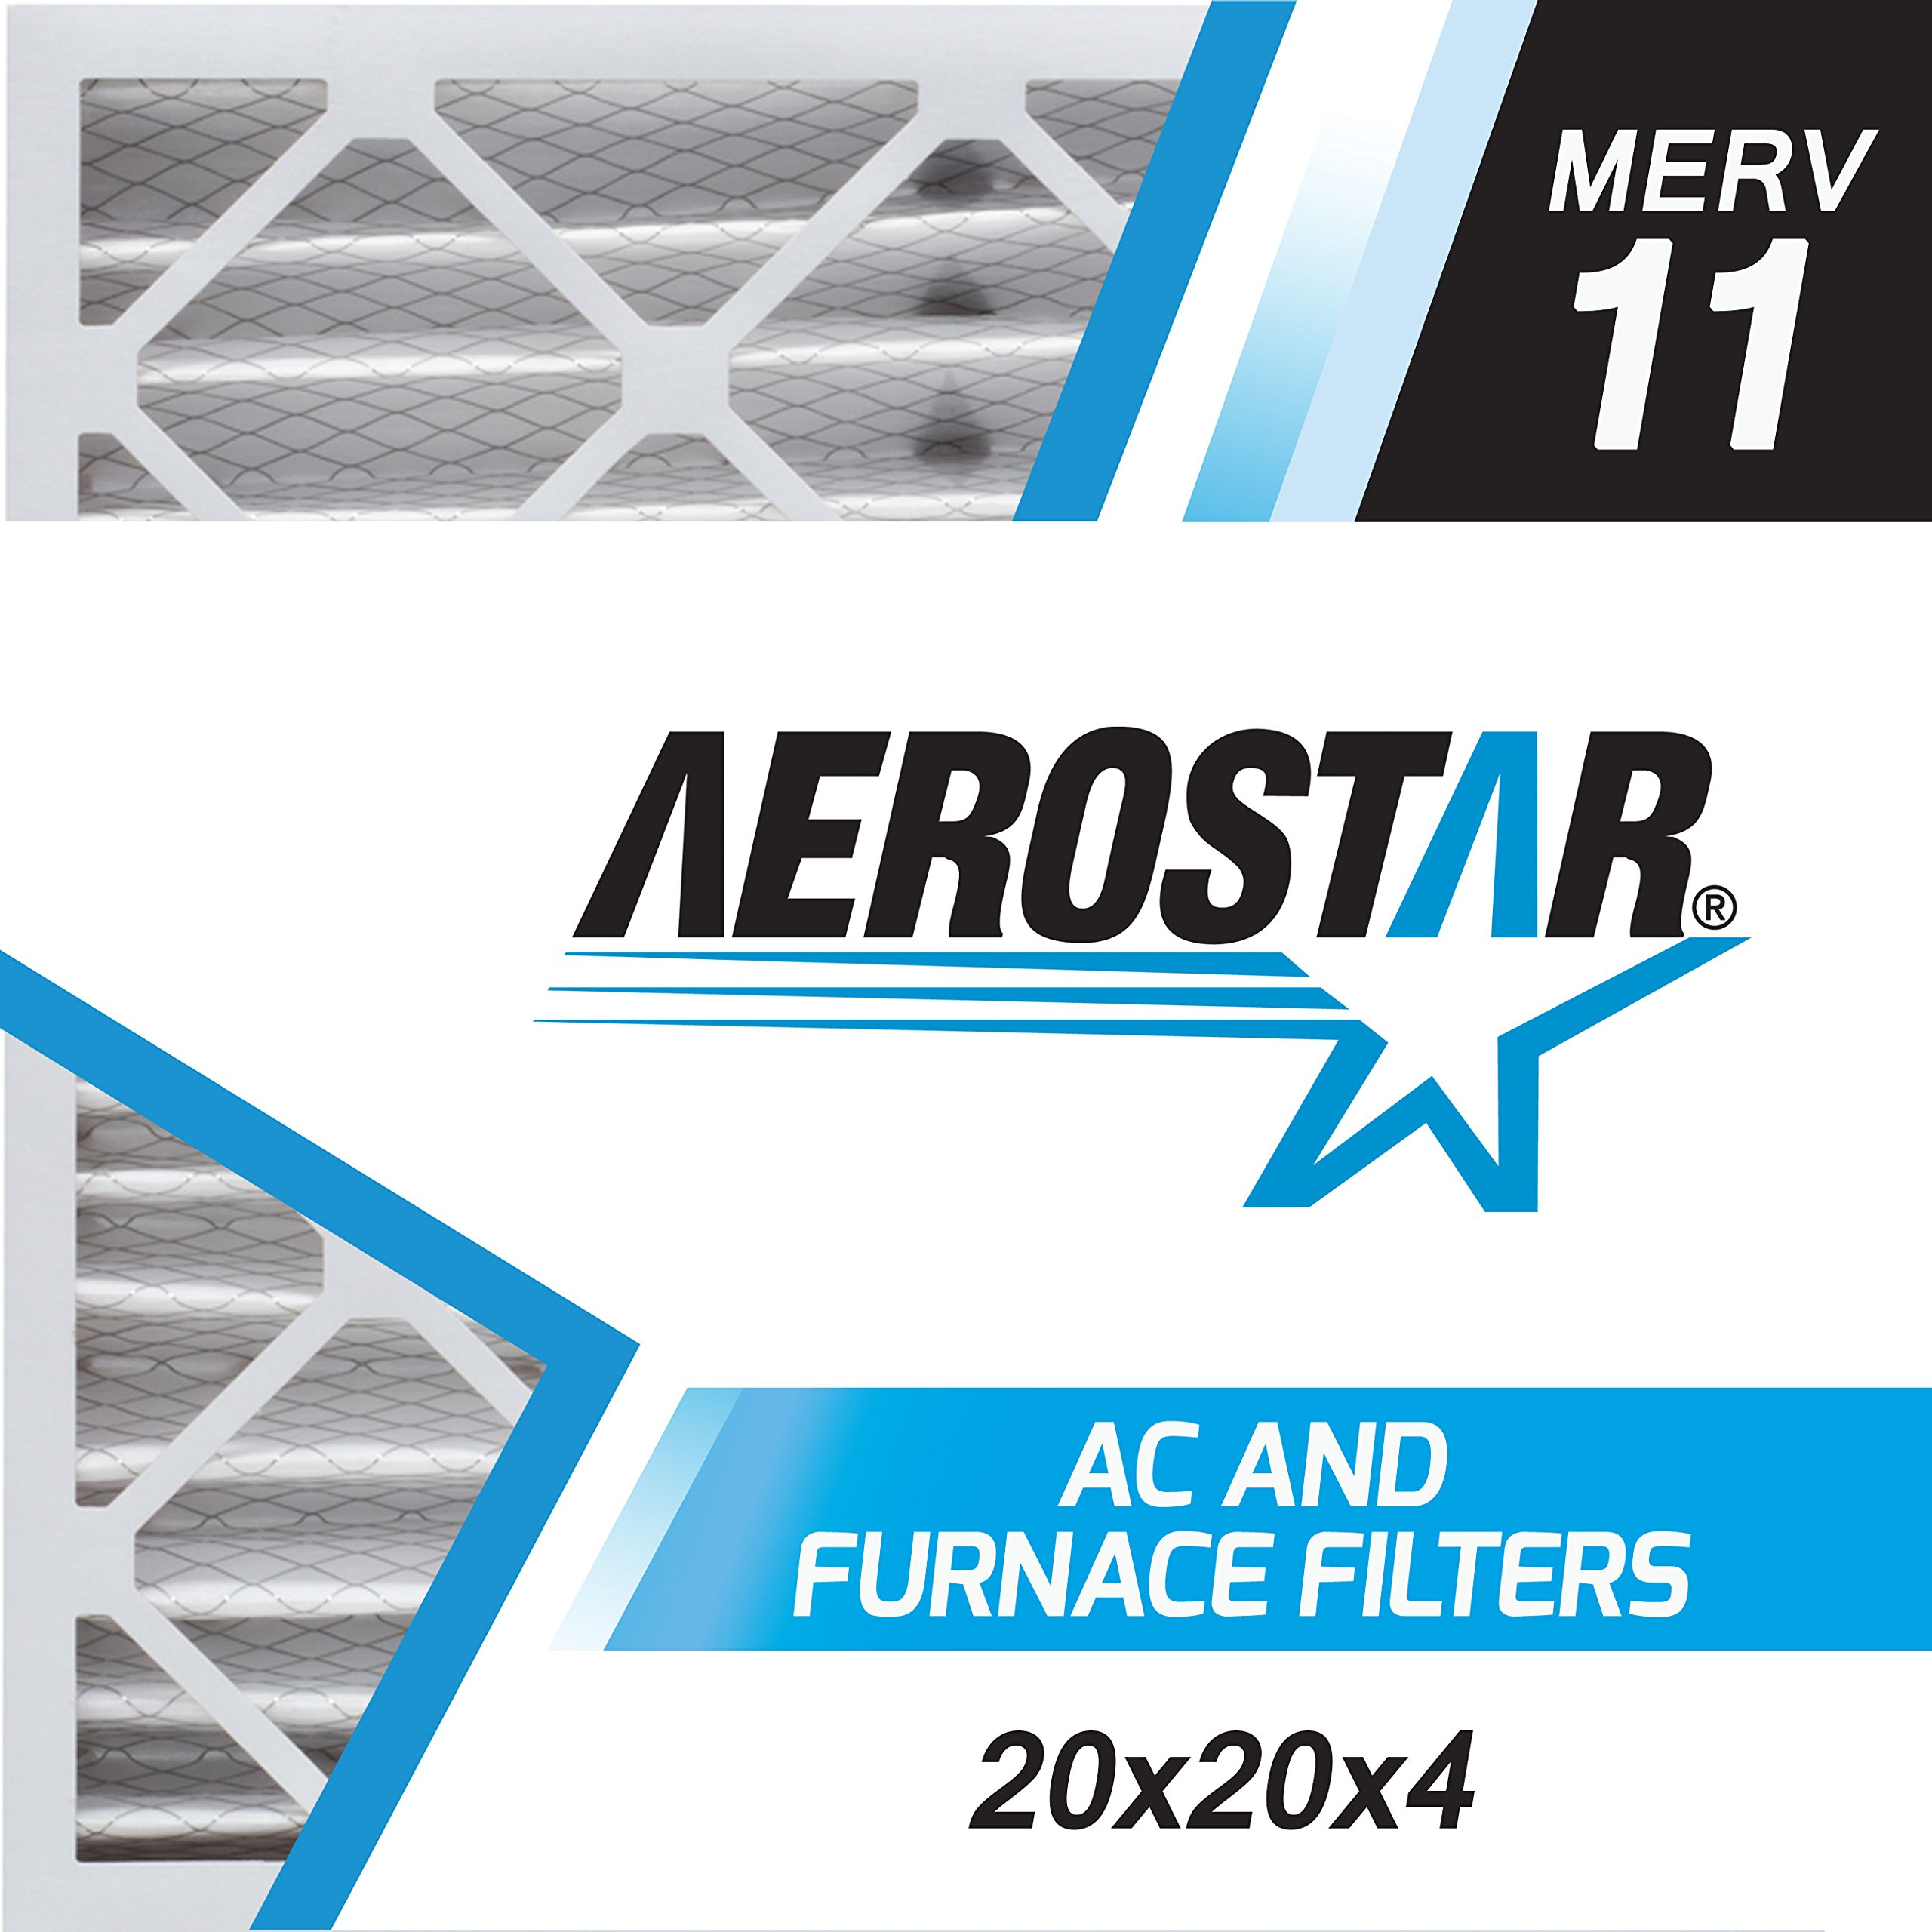 Aerostar 20x20x4 (Two Pack) MERV 11, Pleated Air Filter, 20 x 20 x 4, Box of 2, Made in the USA